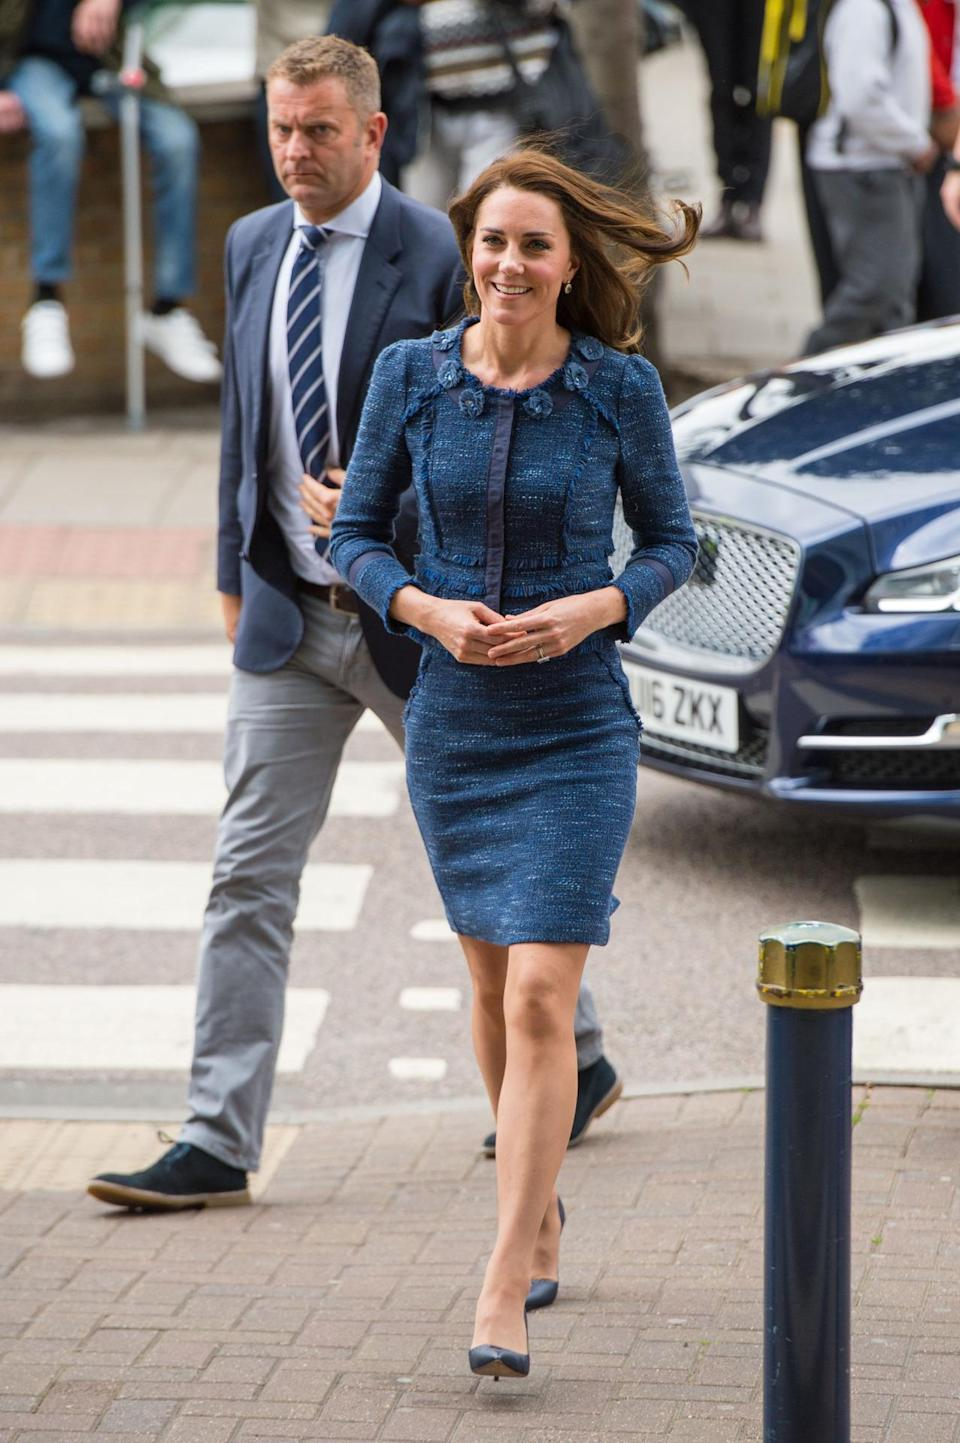 <p>The Duchess visited the survivors of the tragic London terror attack in hospital. She went for an understated workwear look to speak to both the victims and hospital staff, choosing a blue tweed skirt suit by Rebecca Taylor. Studded navy heels by Manolo Blahnik finished off the smart ensemble.</p><p><i>[Photo: PA]</i> </p>